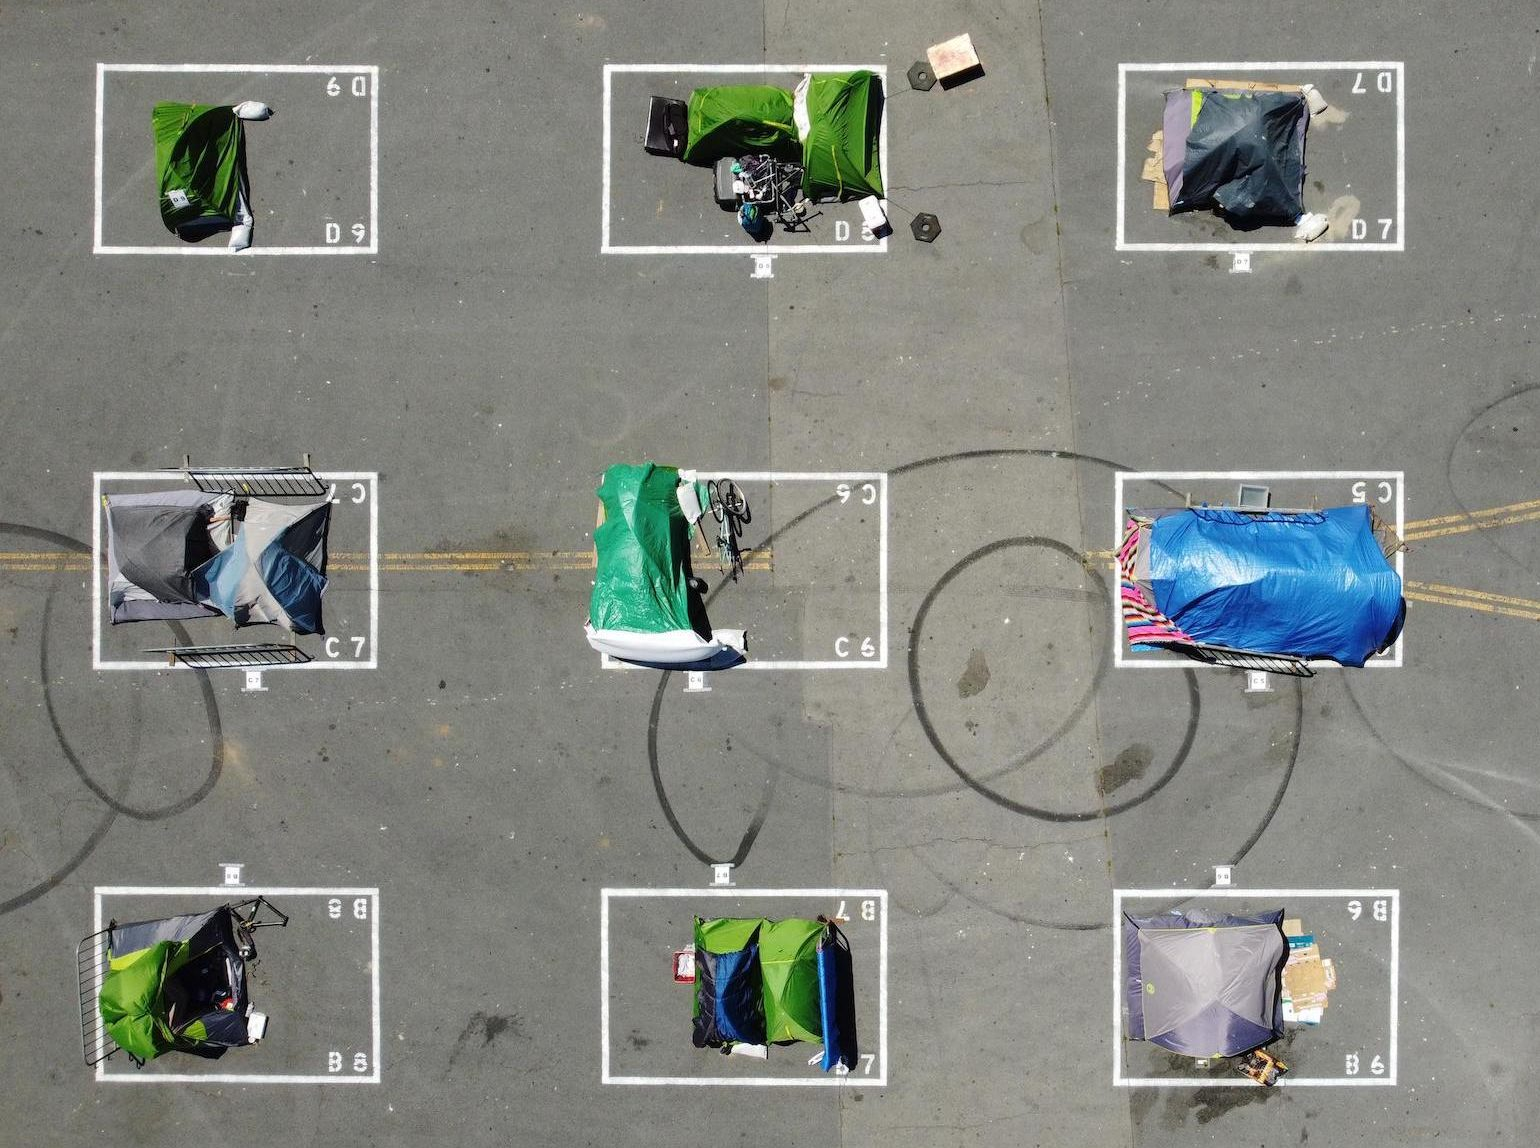 An aerial view of San Francisco city-sanctioned tent encampment for the homeless during the COVID-19 pandemic.